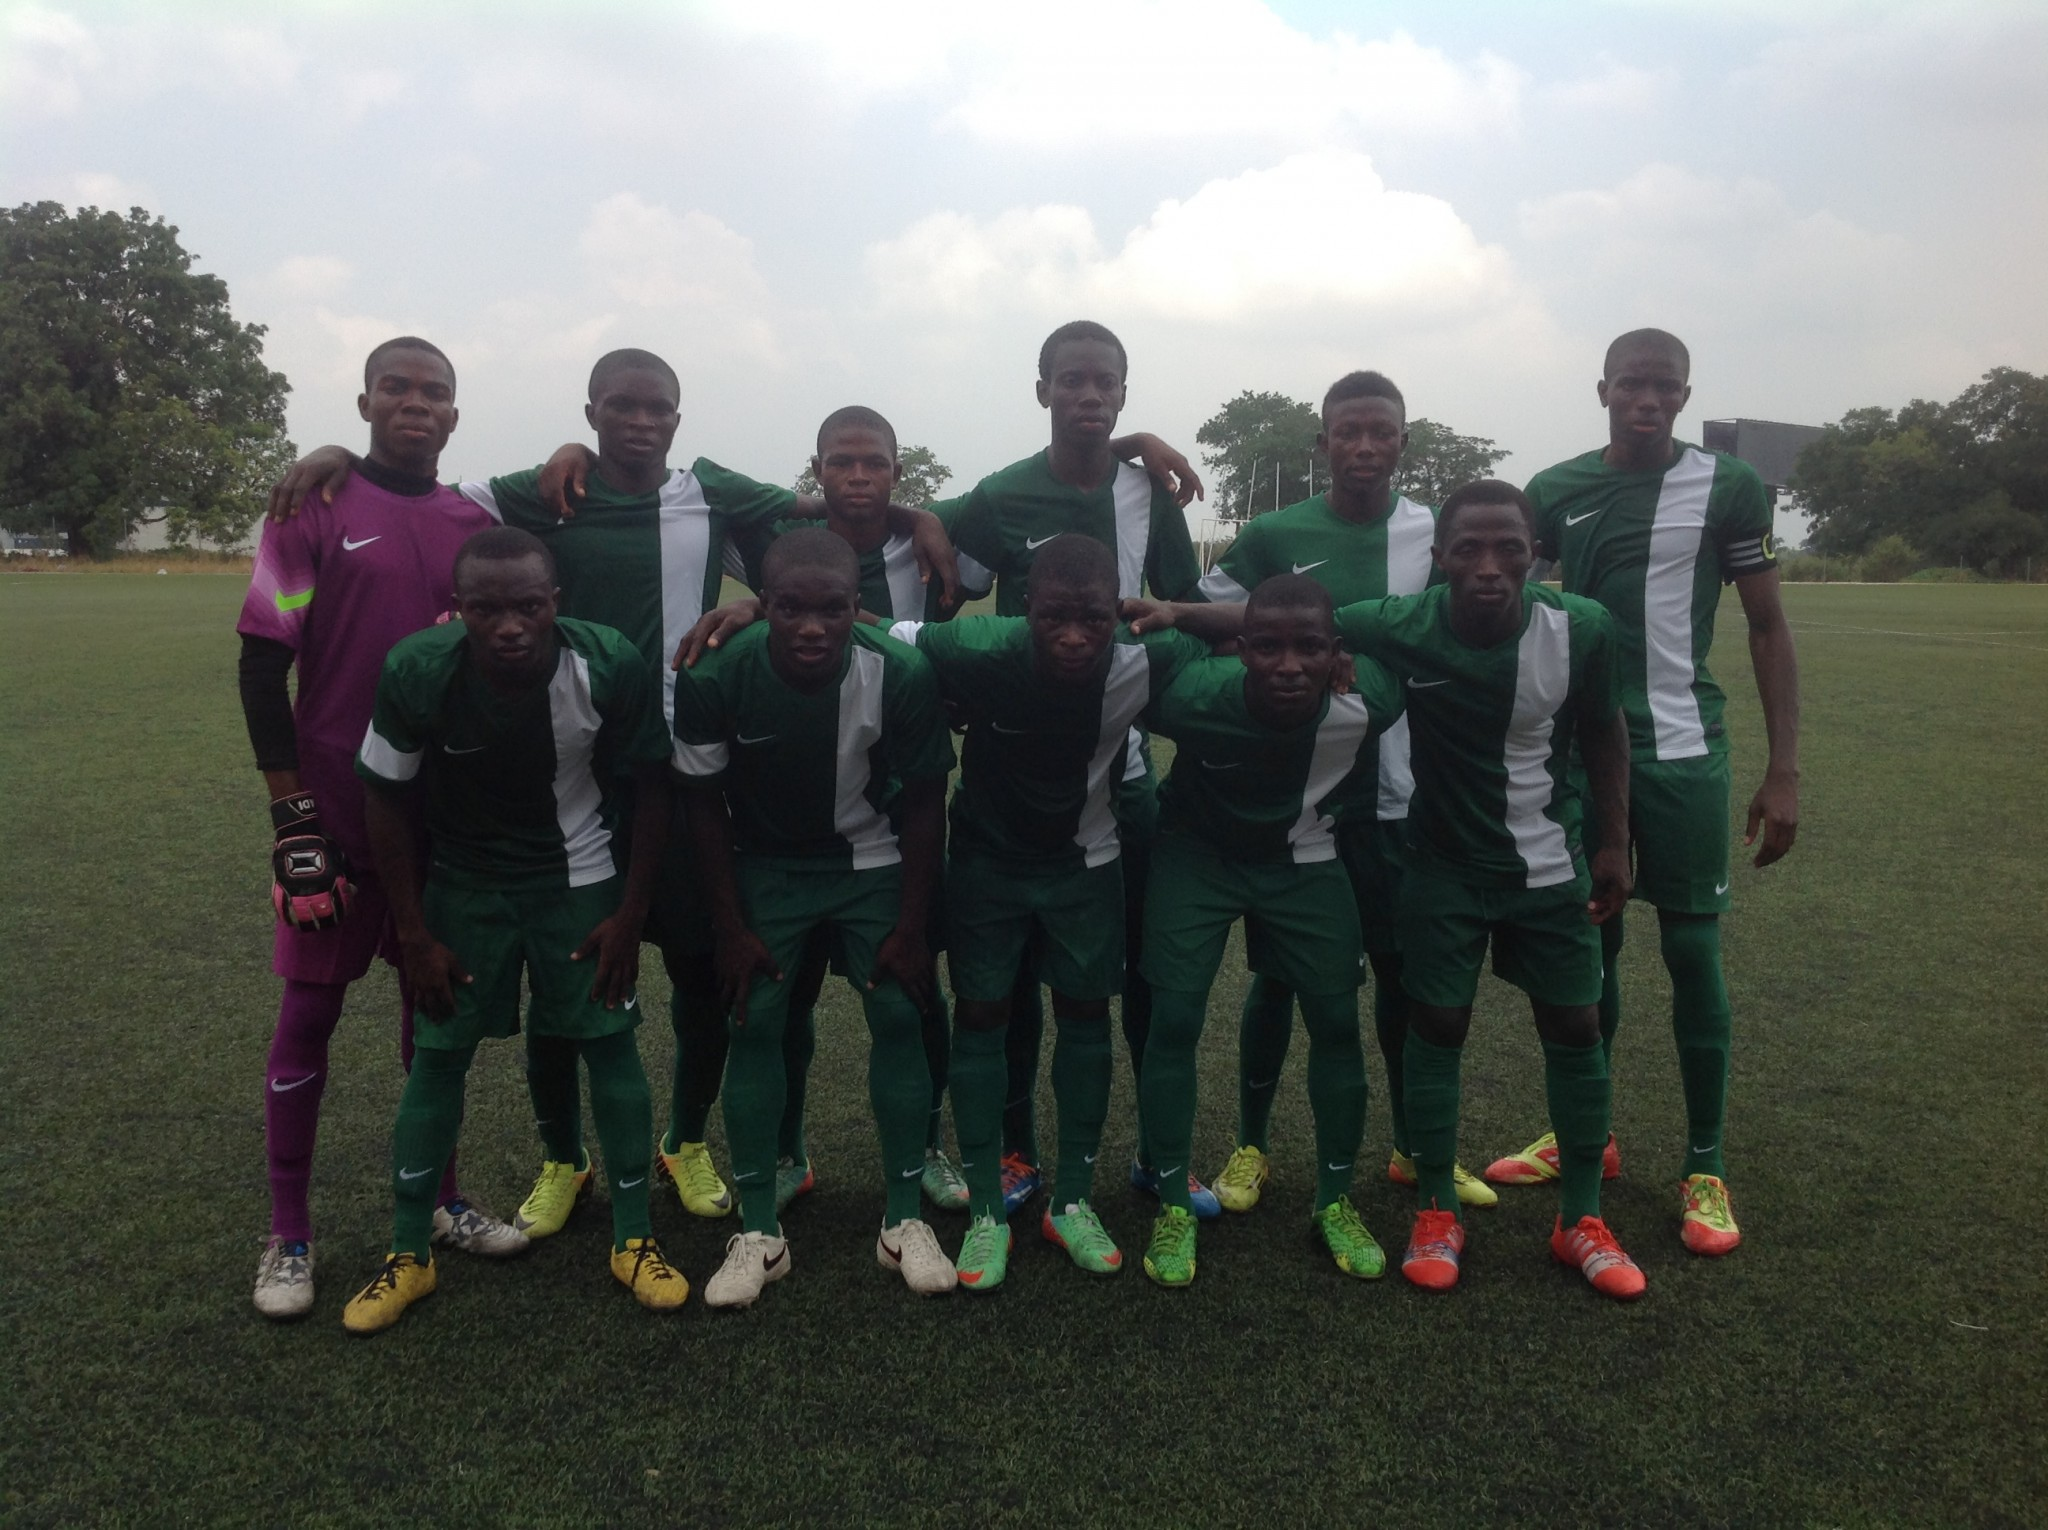 UK Mission pledges support for Nigeria football